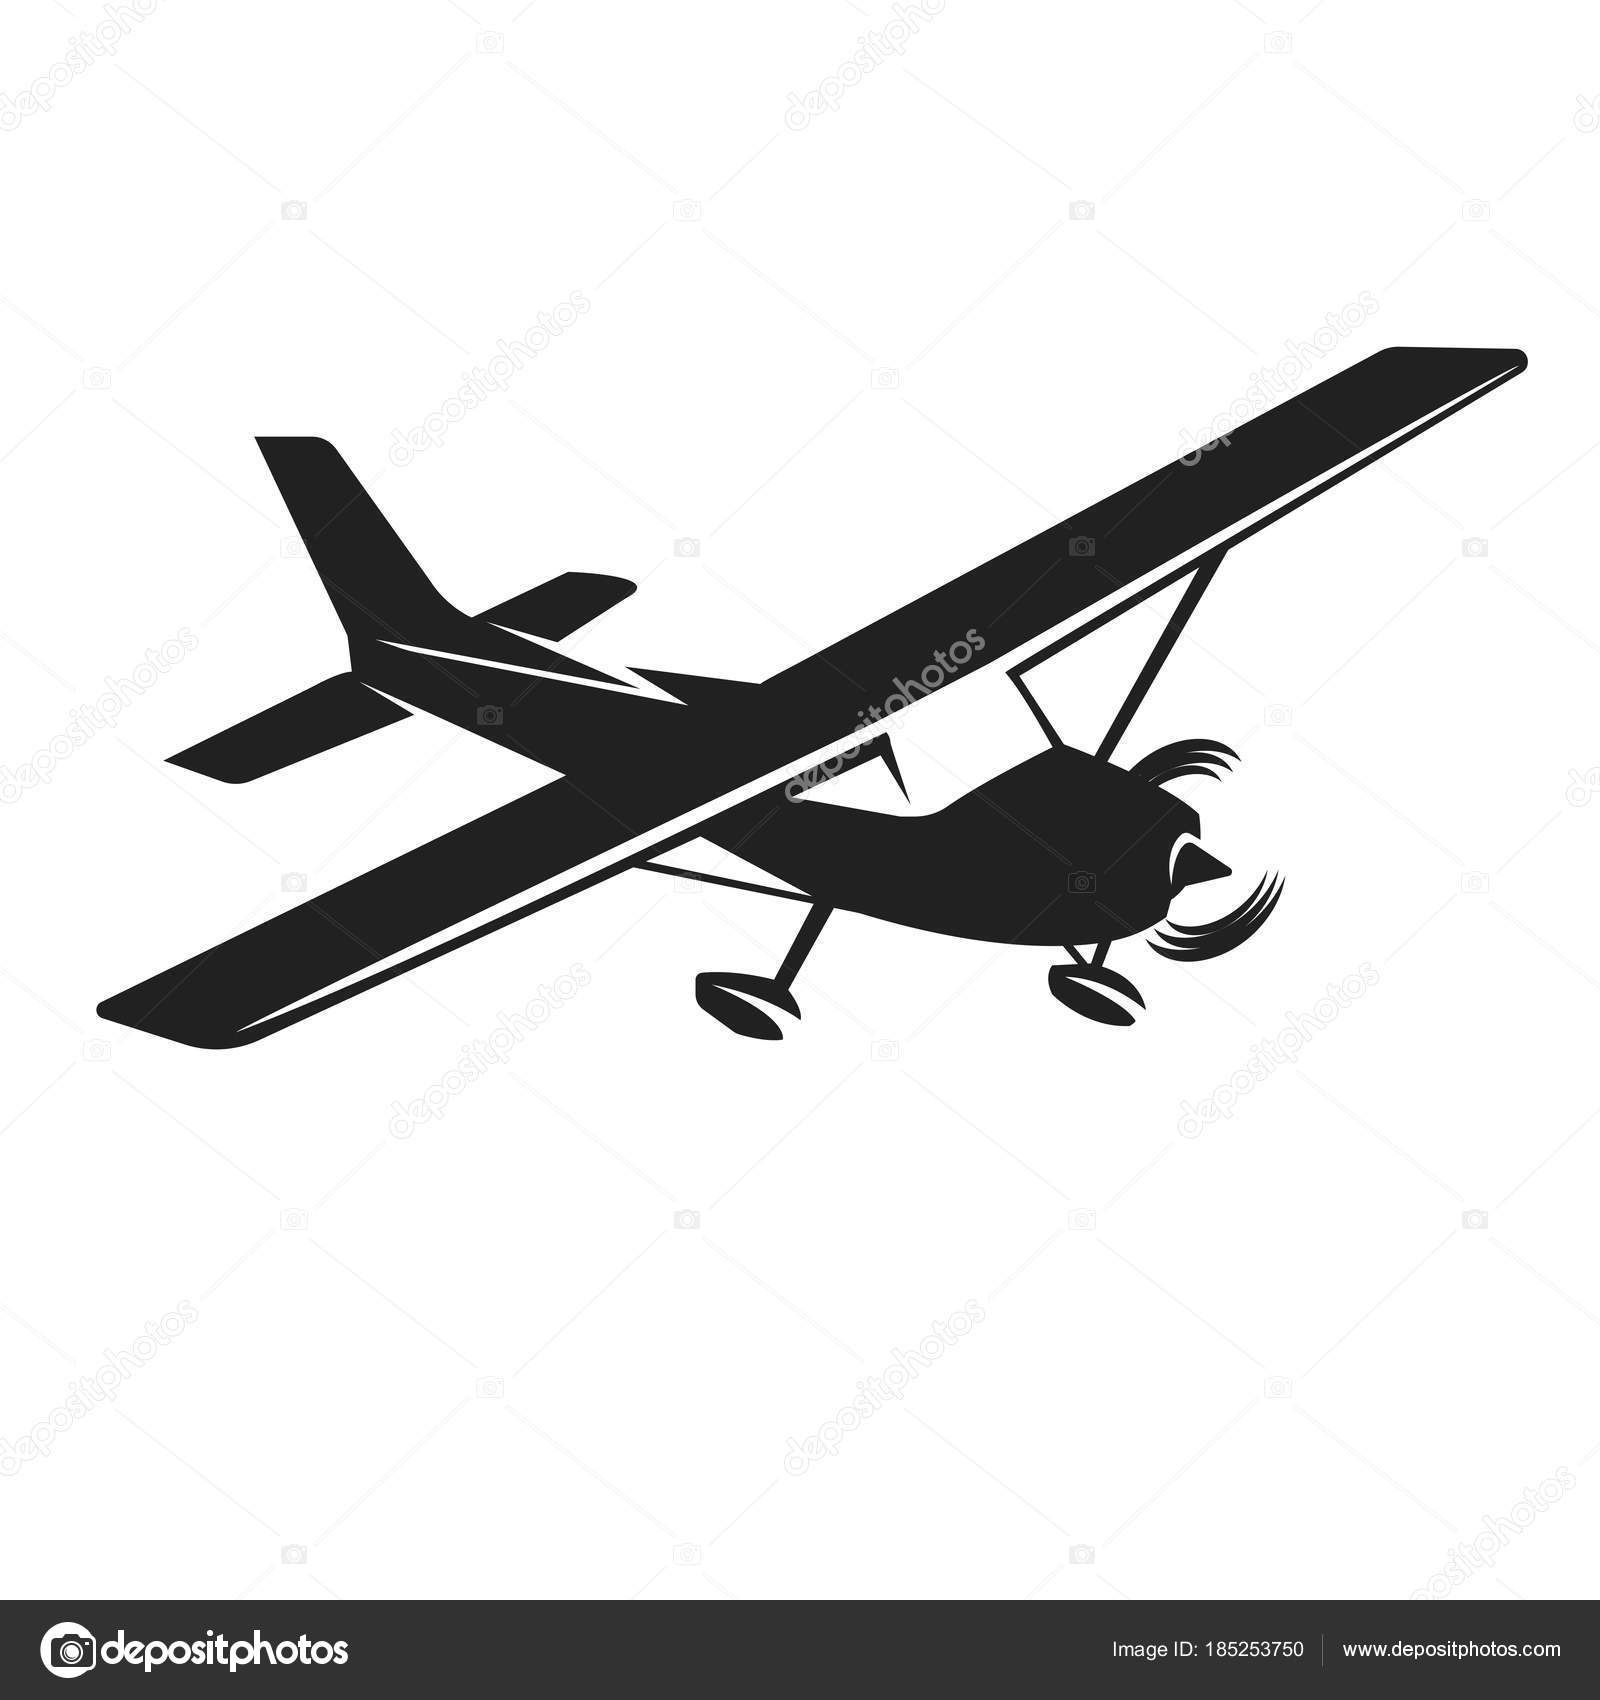 152 clipart banner royalty free stock Image result for cessna 152 silhouette clipart | Aviation | Nail art ... banner royalty free stock